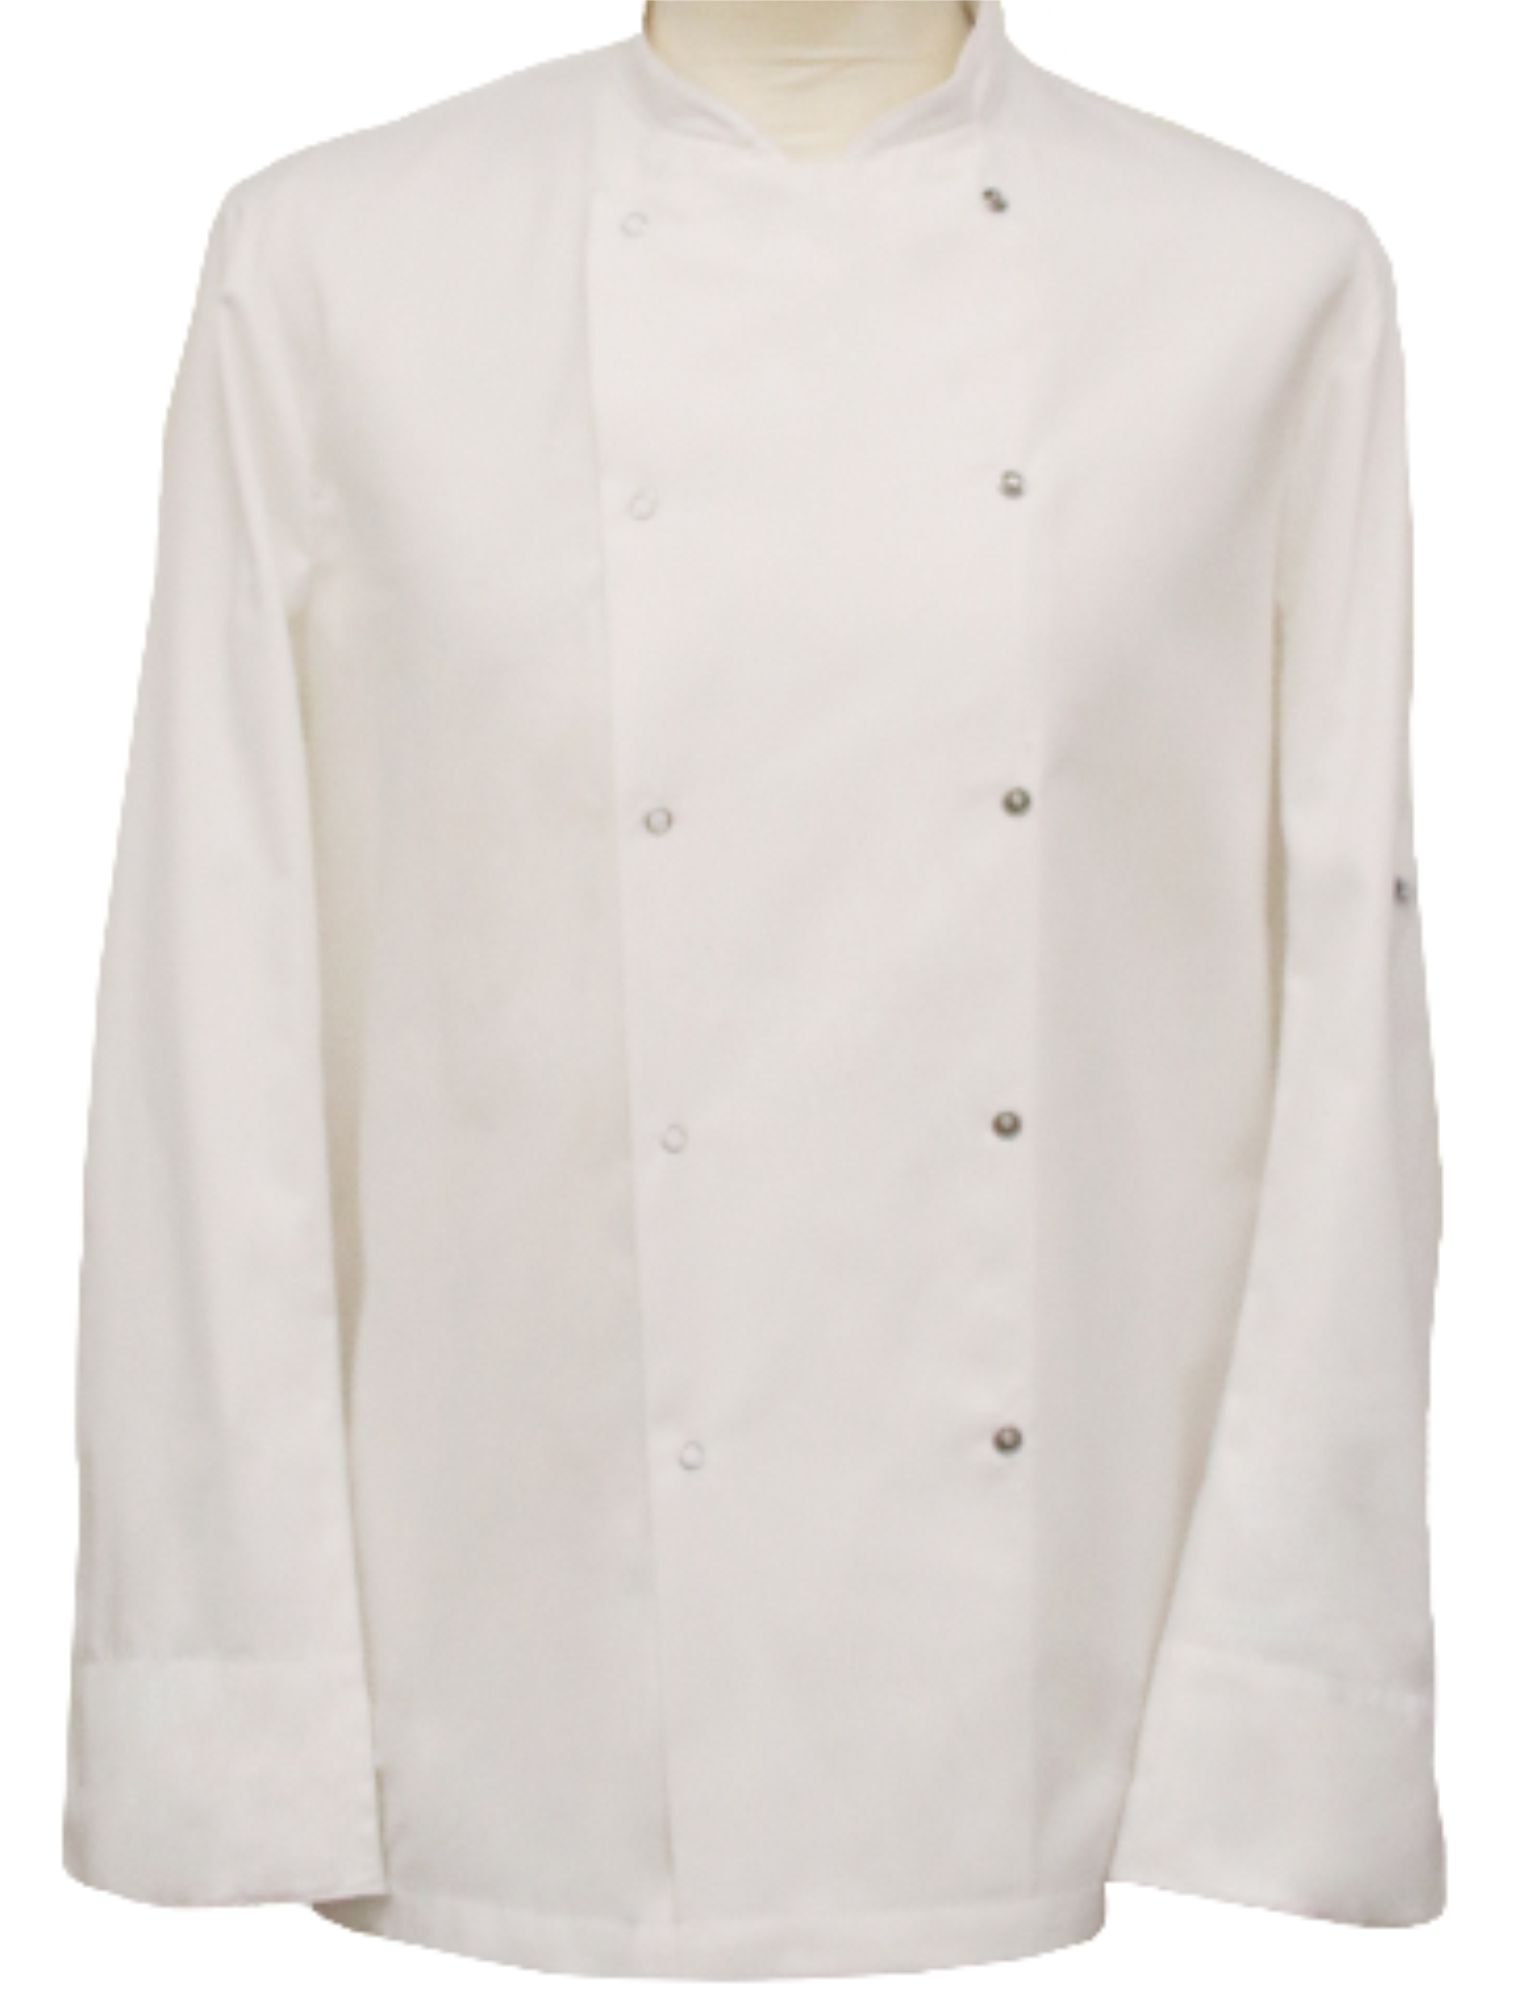 DD08AFDE/L Long Sleeve Chefs jacket